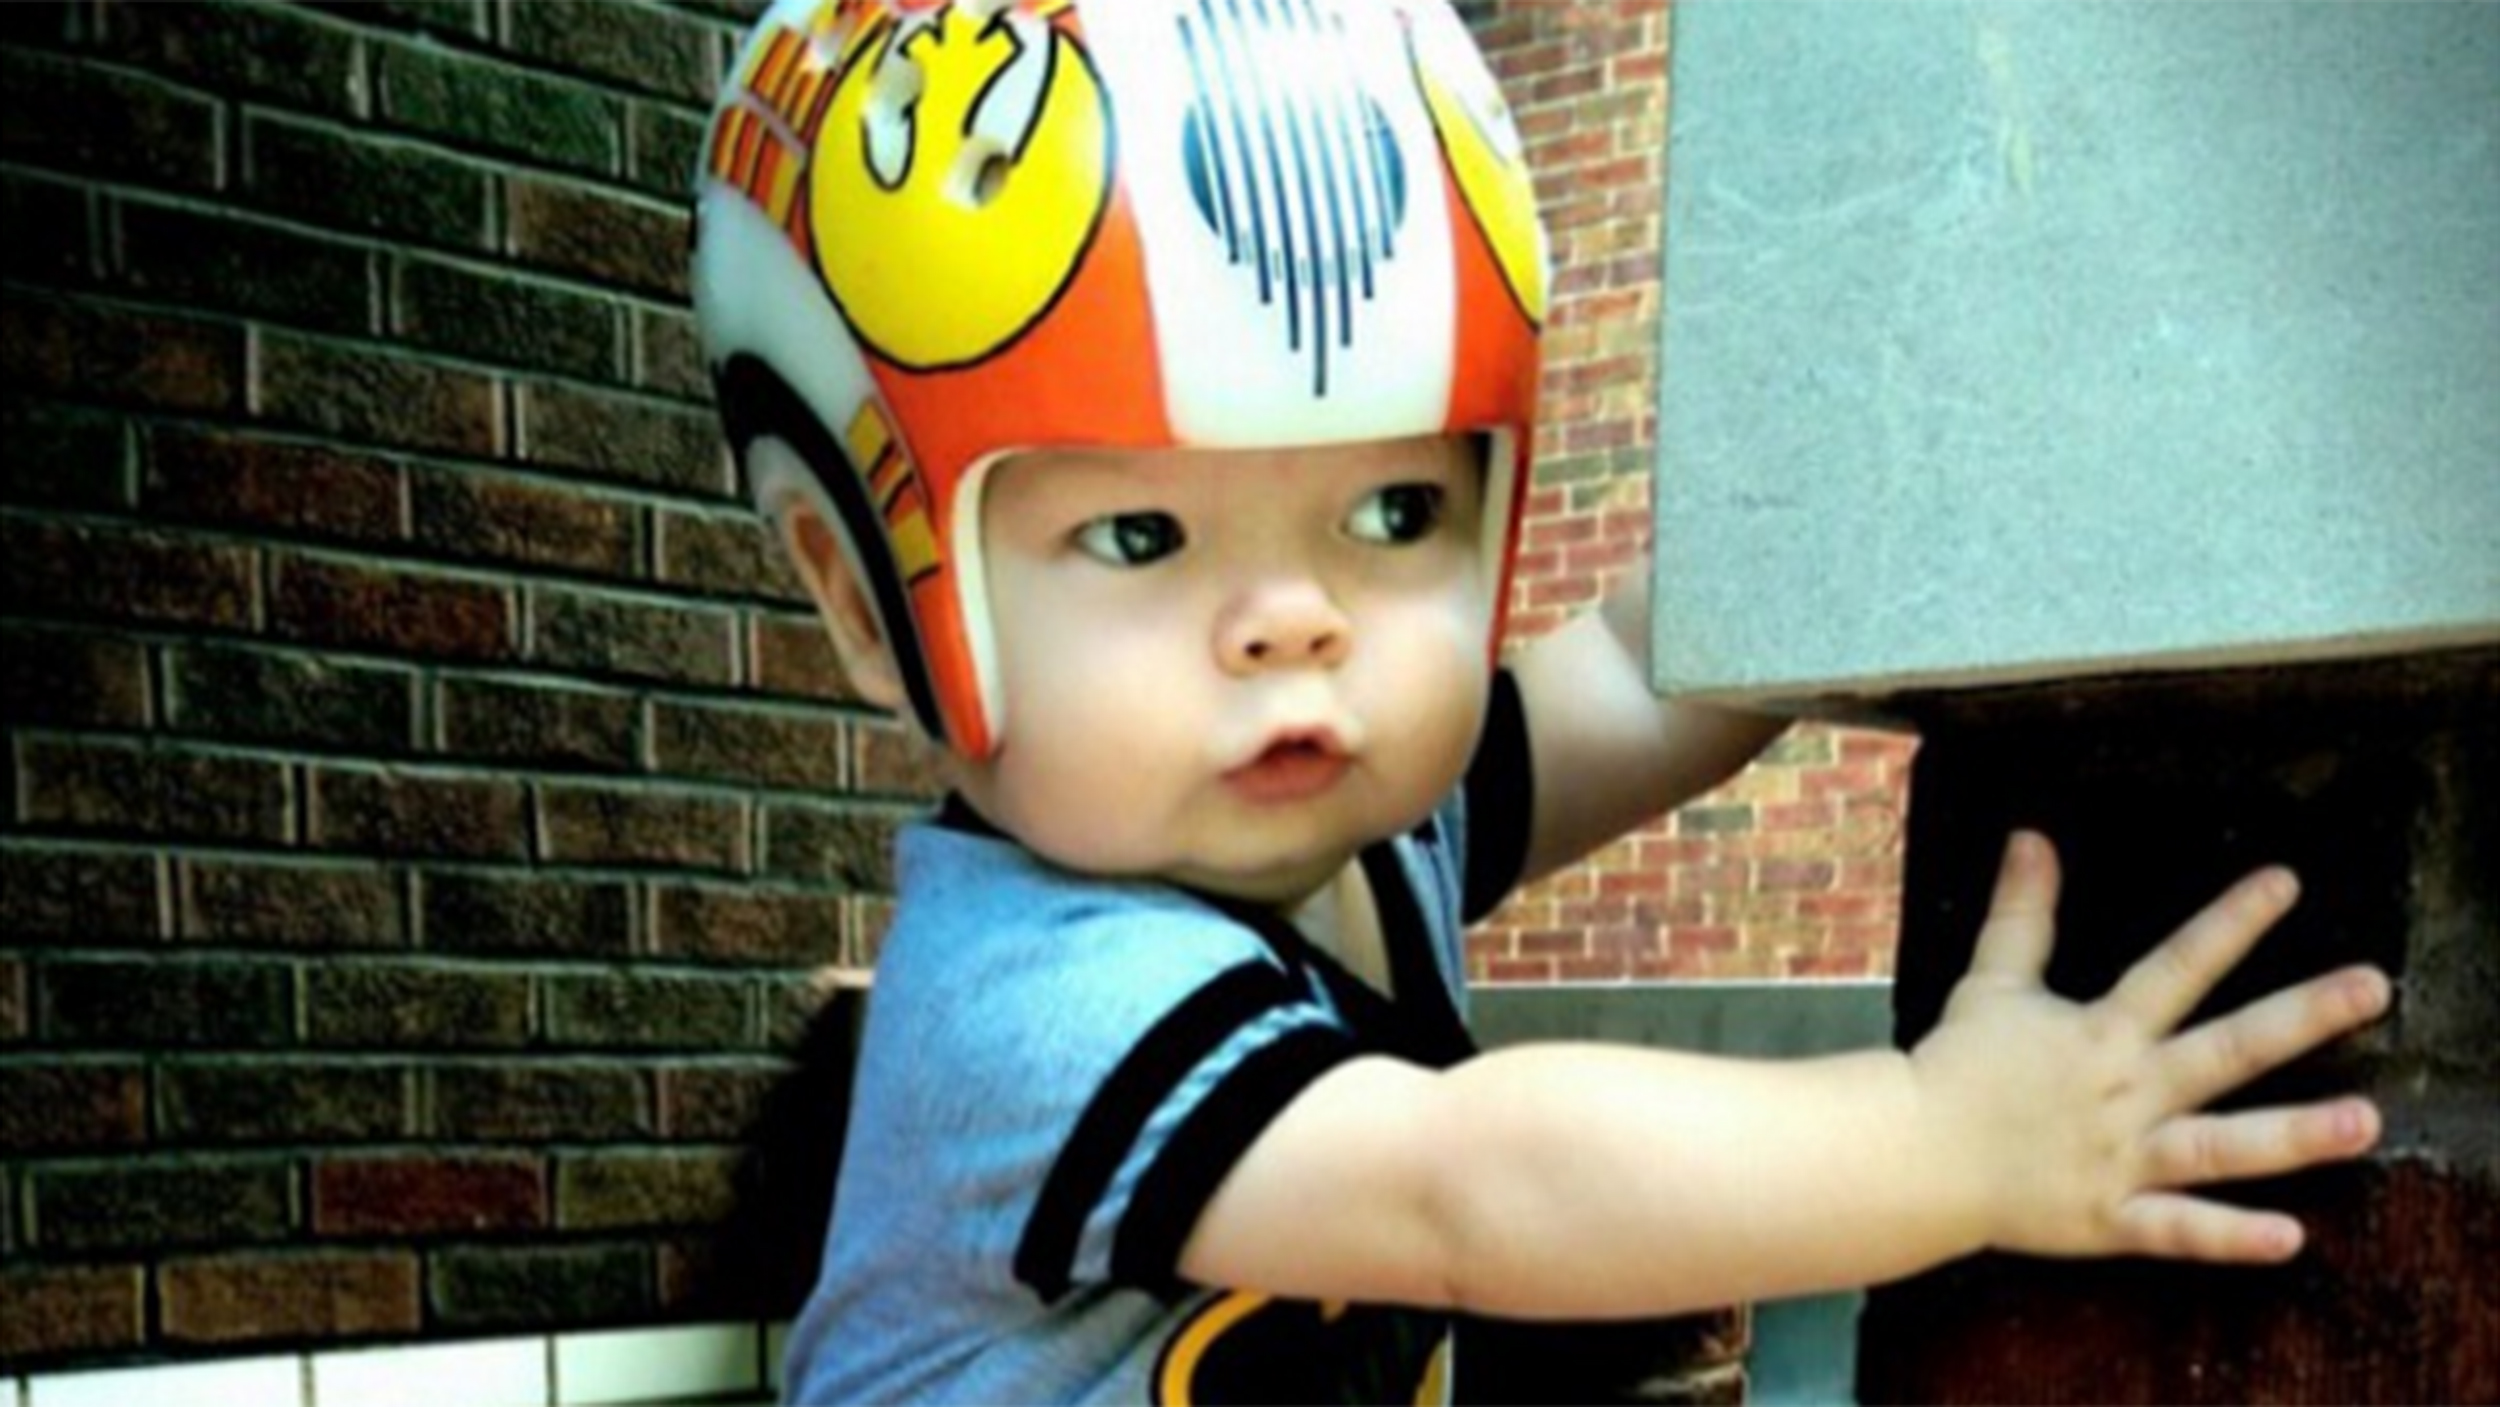 Dad Creates Awesome Star Wars Helmets For Son With Skull Condition - Baby helmet decals